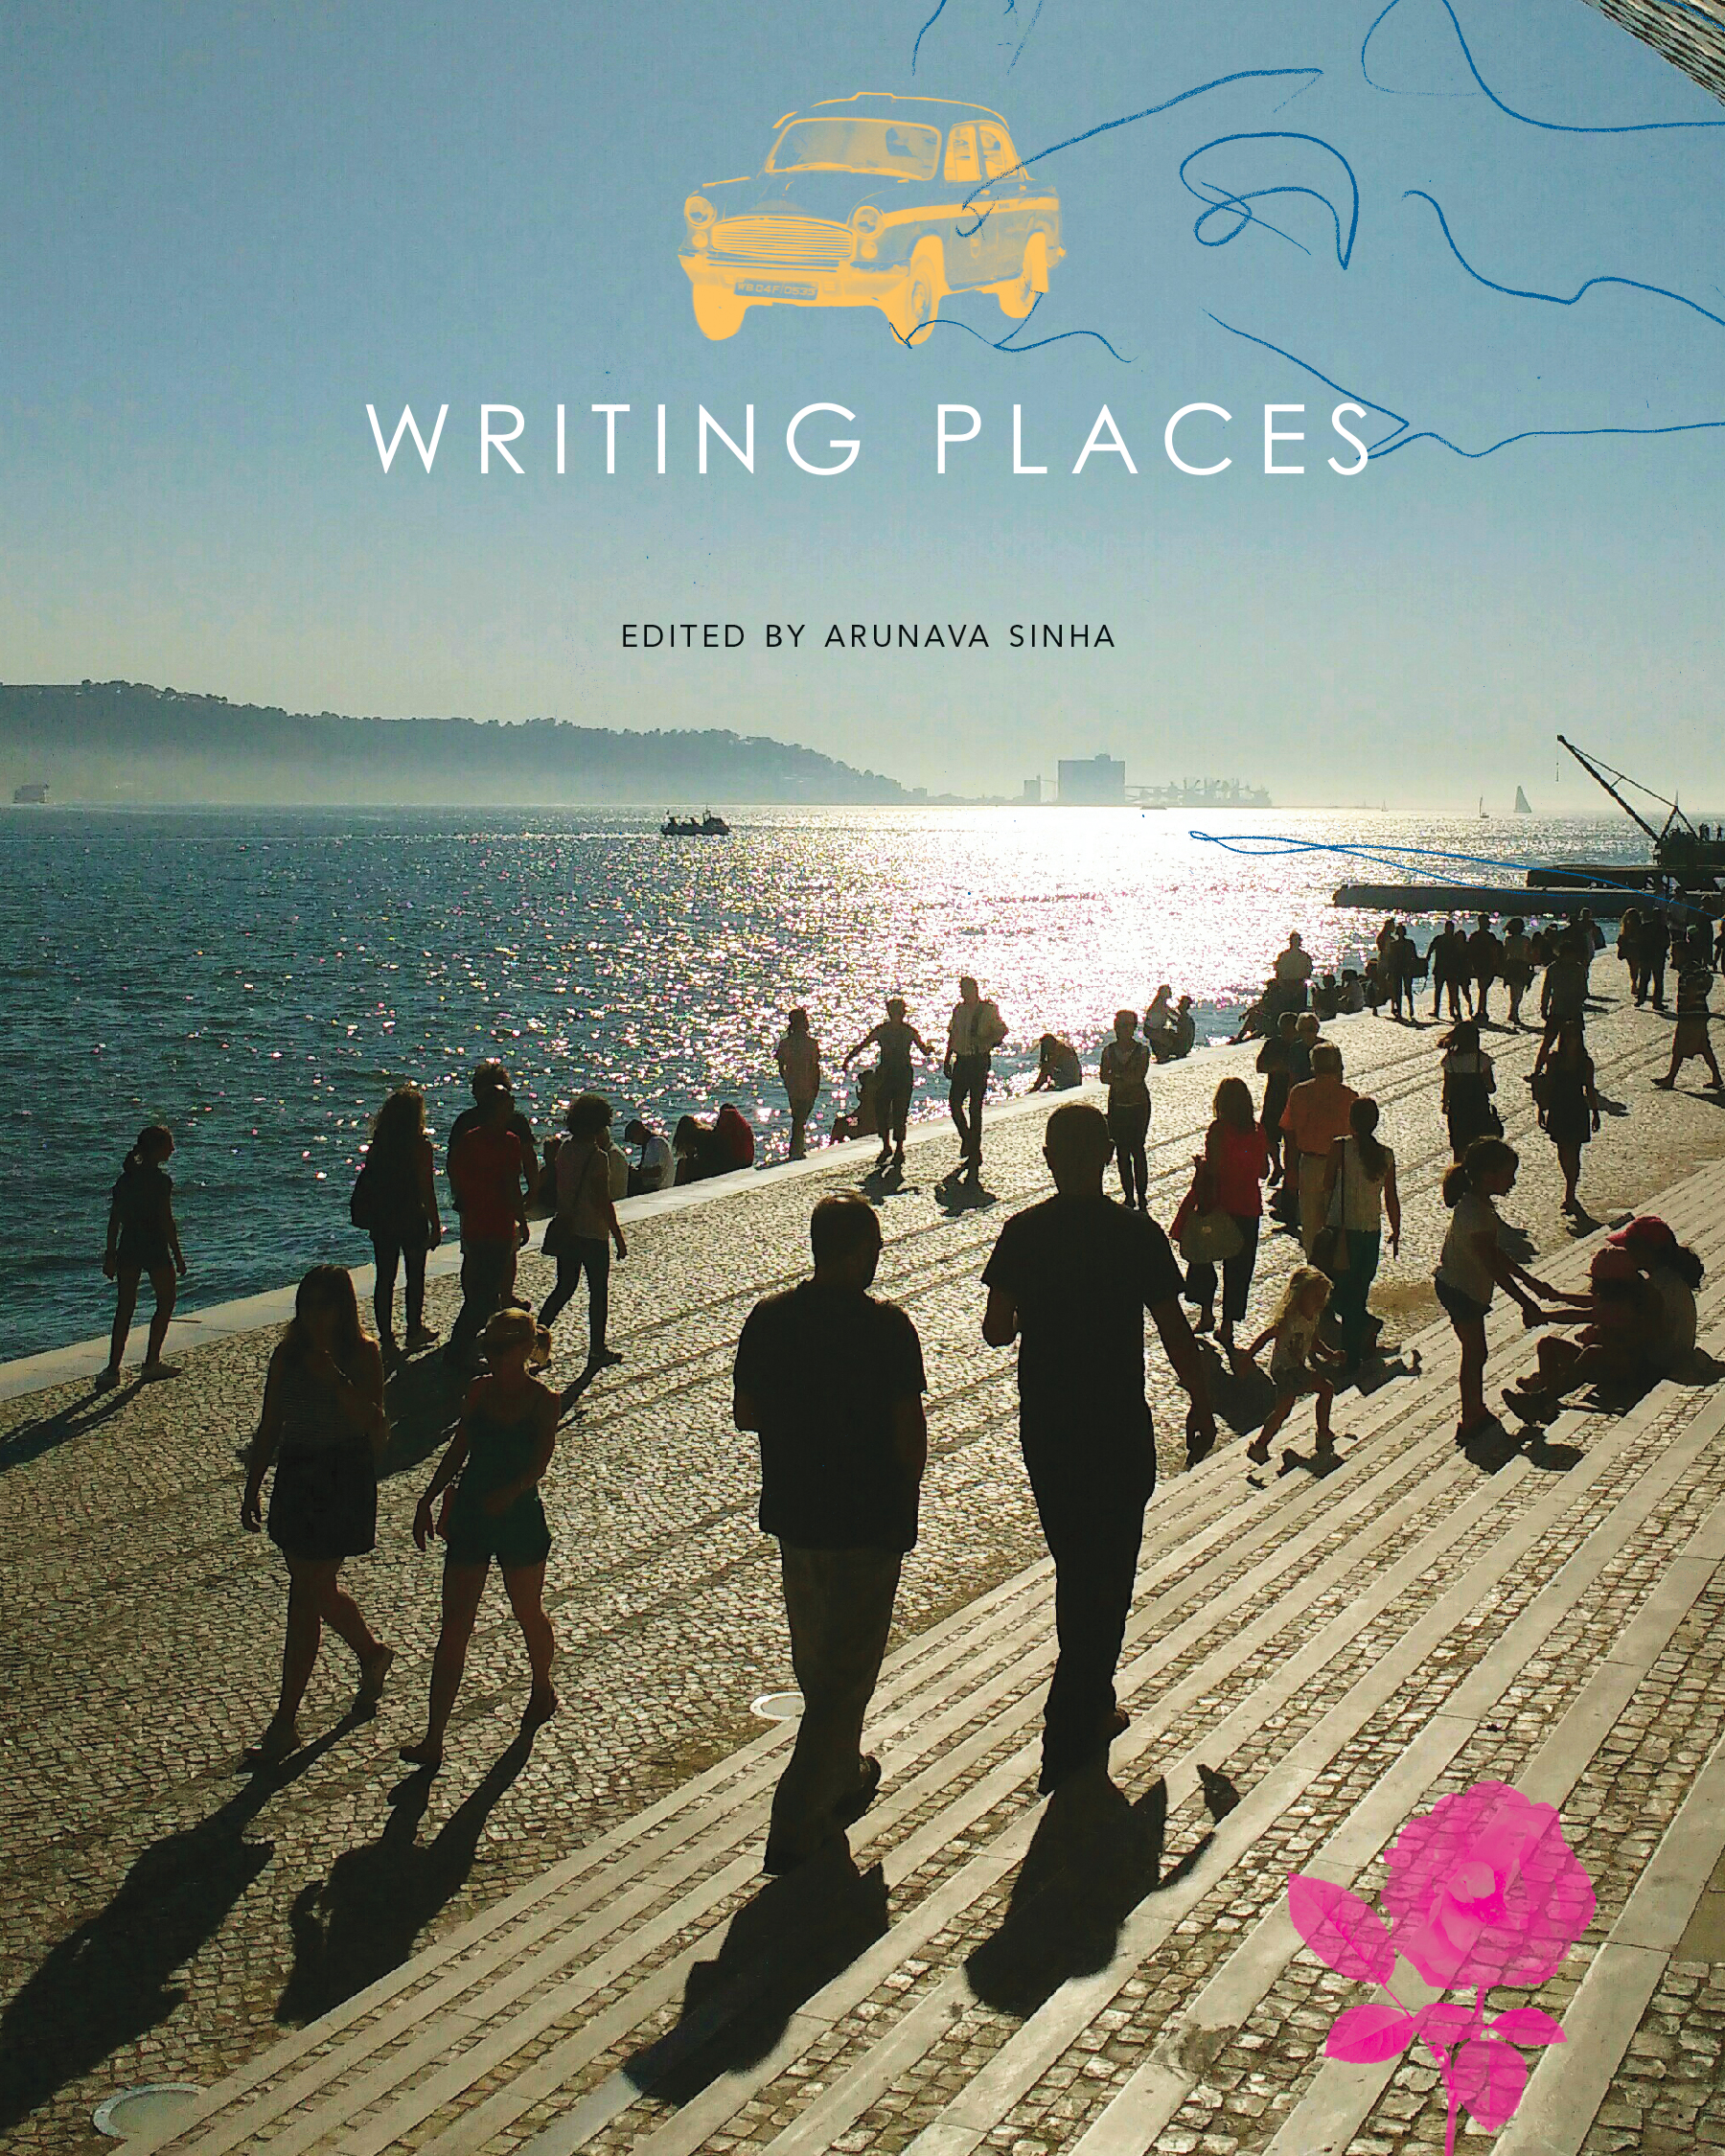 Writing Places: Texts, Rhythms, Images by Arunava Sinha | Seagull Books